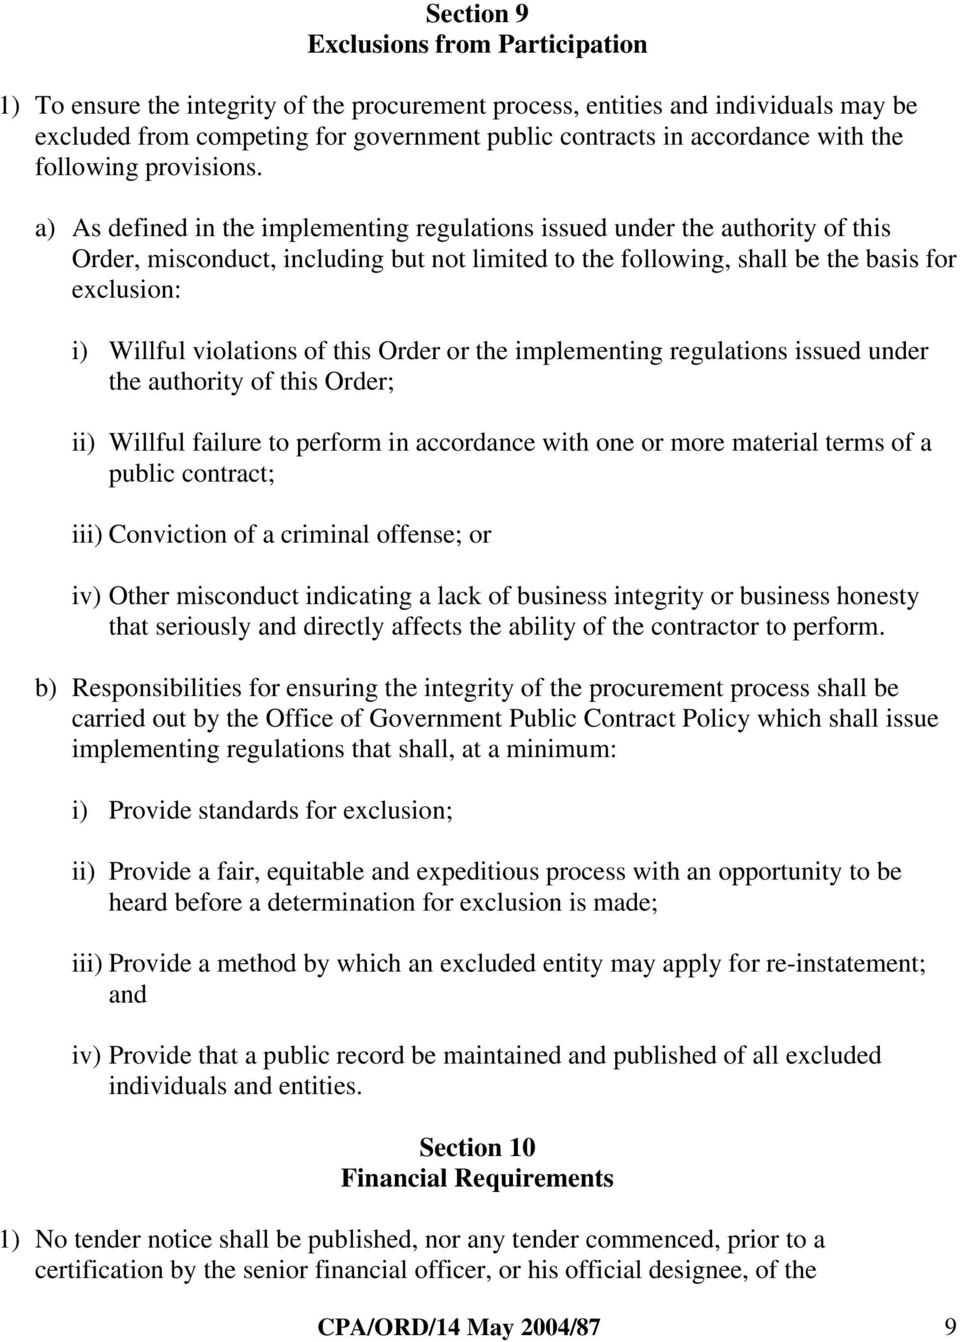 a) As defined in the implementing regulations issued under the authority of this Order, misconduct, including but not limited to the following, shall be the basis for exclusion: i) Willful violations